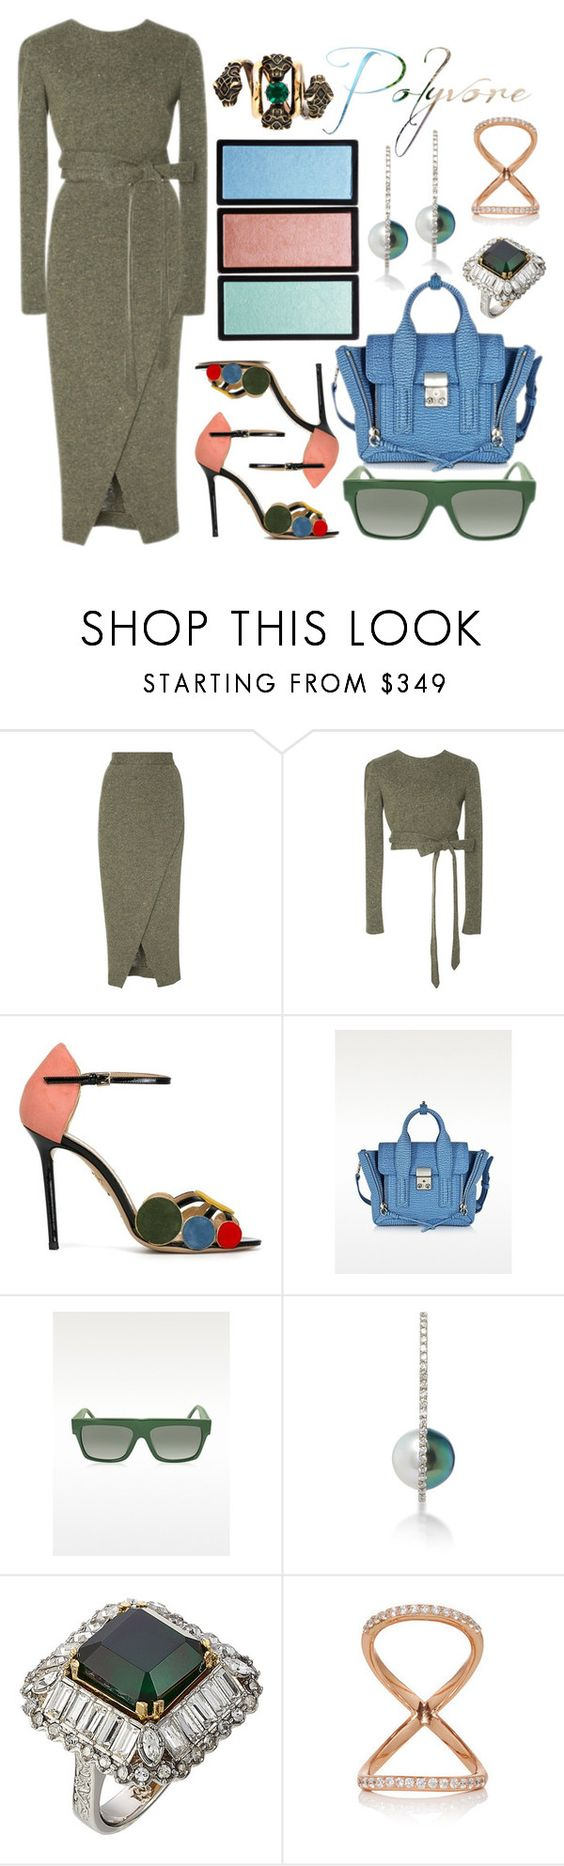 """""""Contemporary"""" by cherieaustin ❤ liked on Polyvore featuring Charlotte Olympia, 3.1 Phillip Lim, CÉLINE, Alexander McQueen, Gucci and contemporary"""